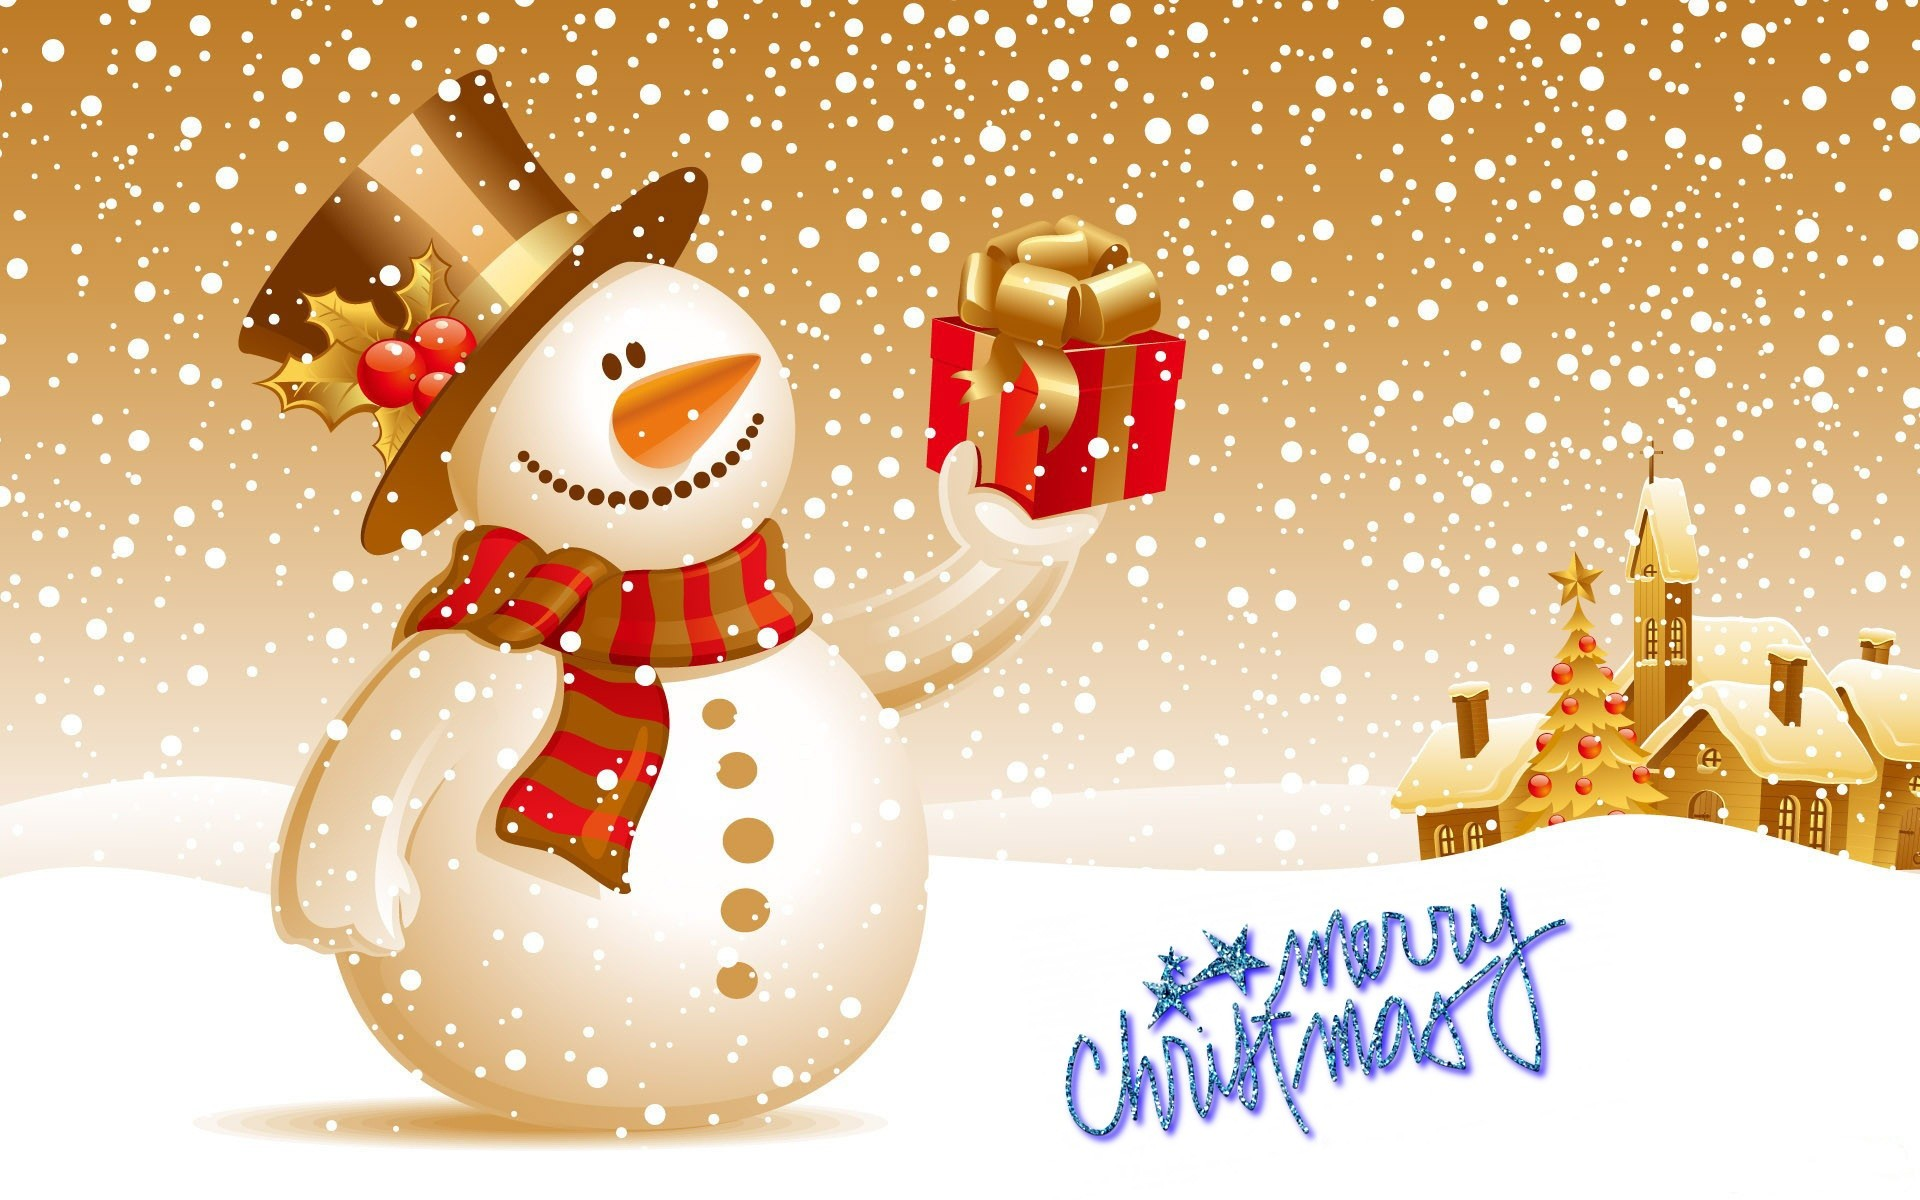 1920x1200 Merry Christmas Greetings Wallpapers | Free Merry Christmas Greetings .